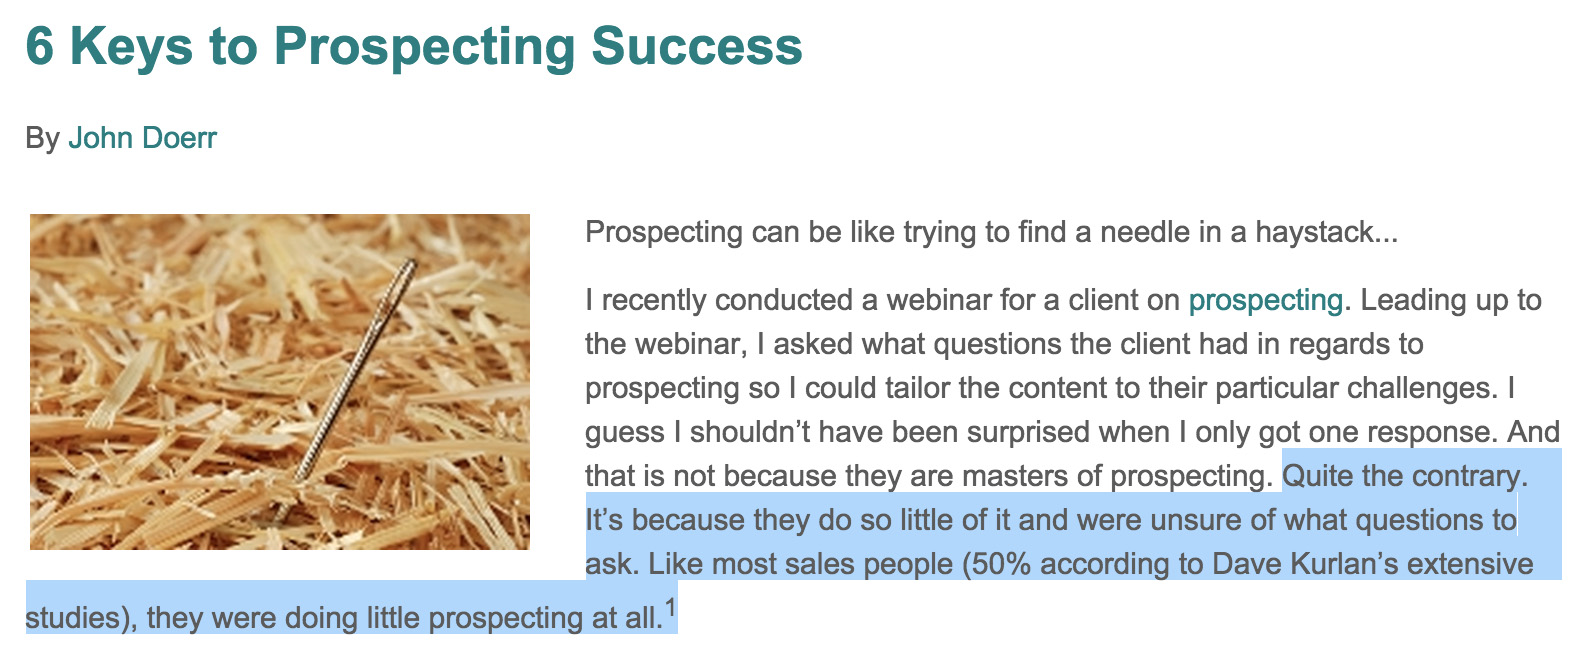 Importance of Prospecting